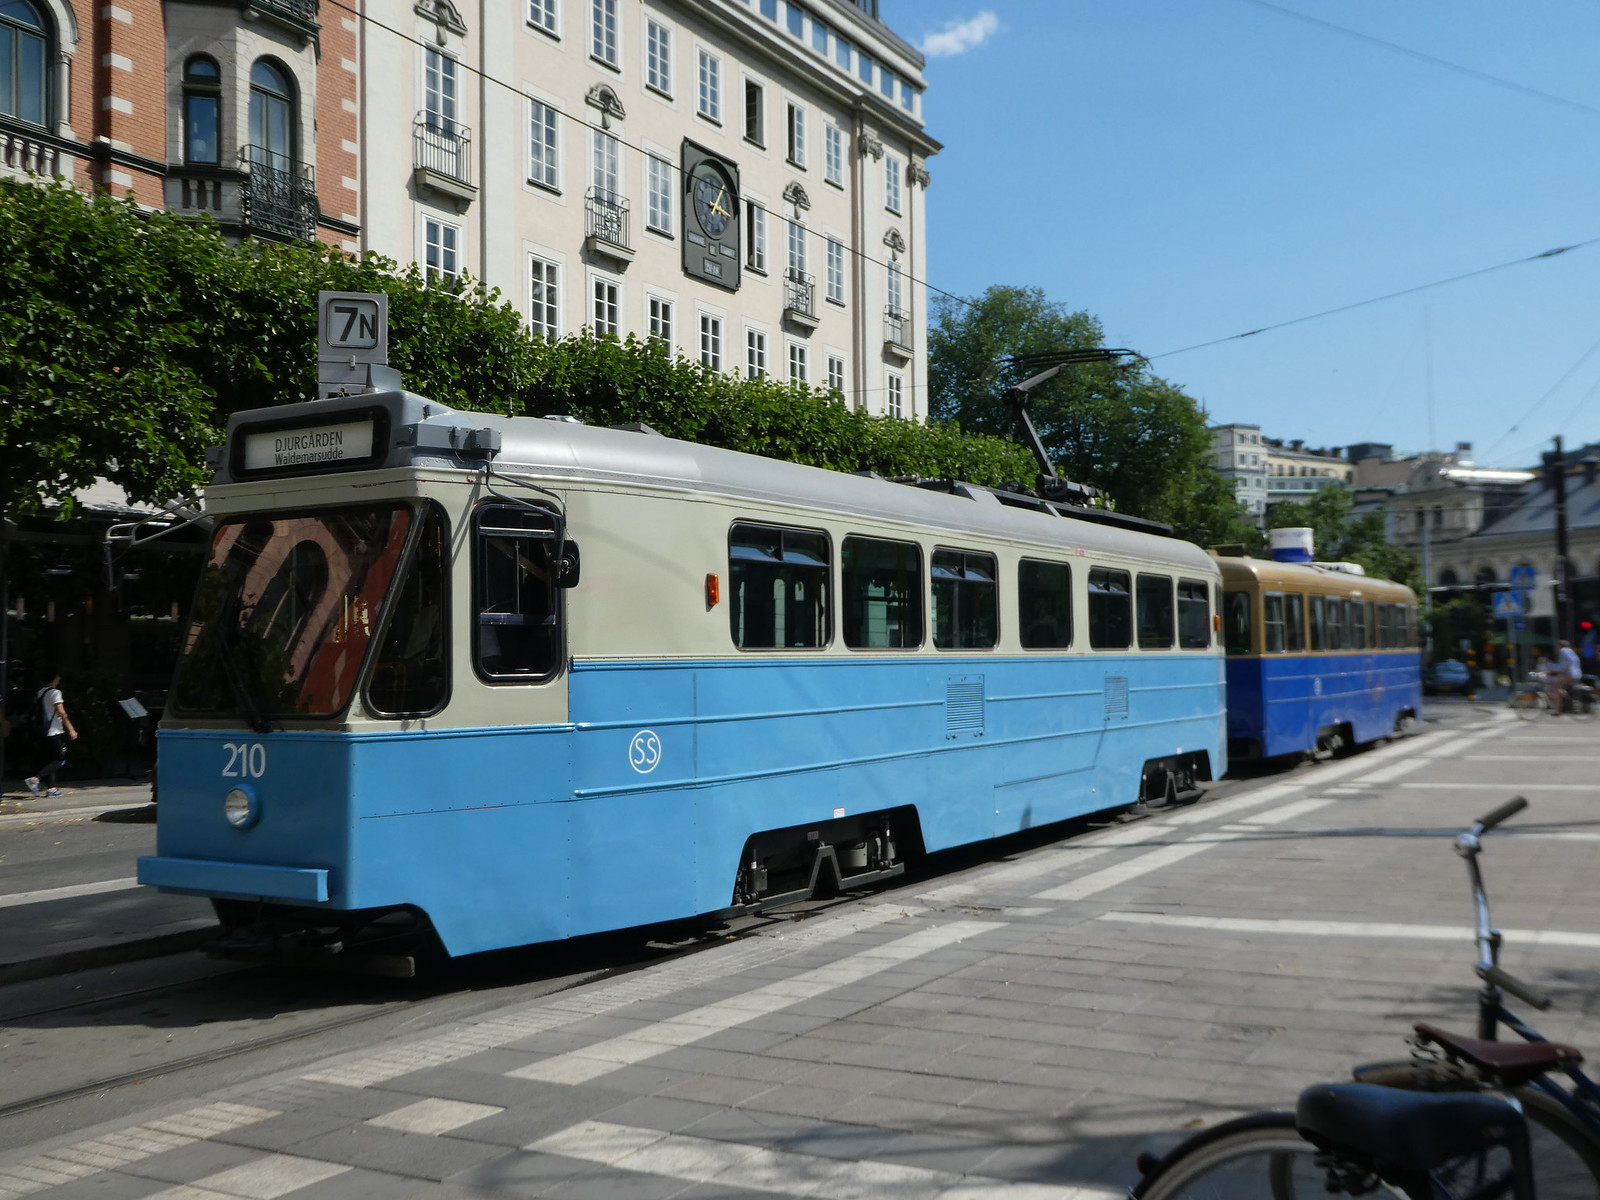 Heritage tram No. 7 in central Stockholm